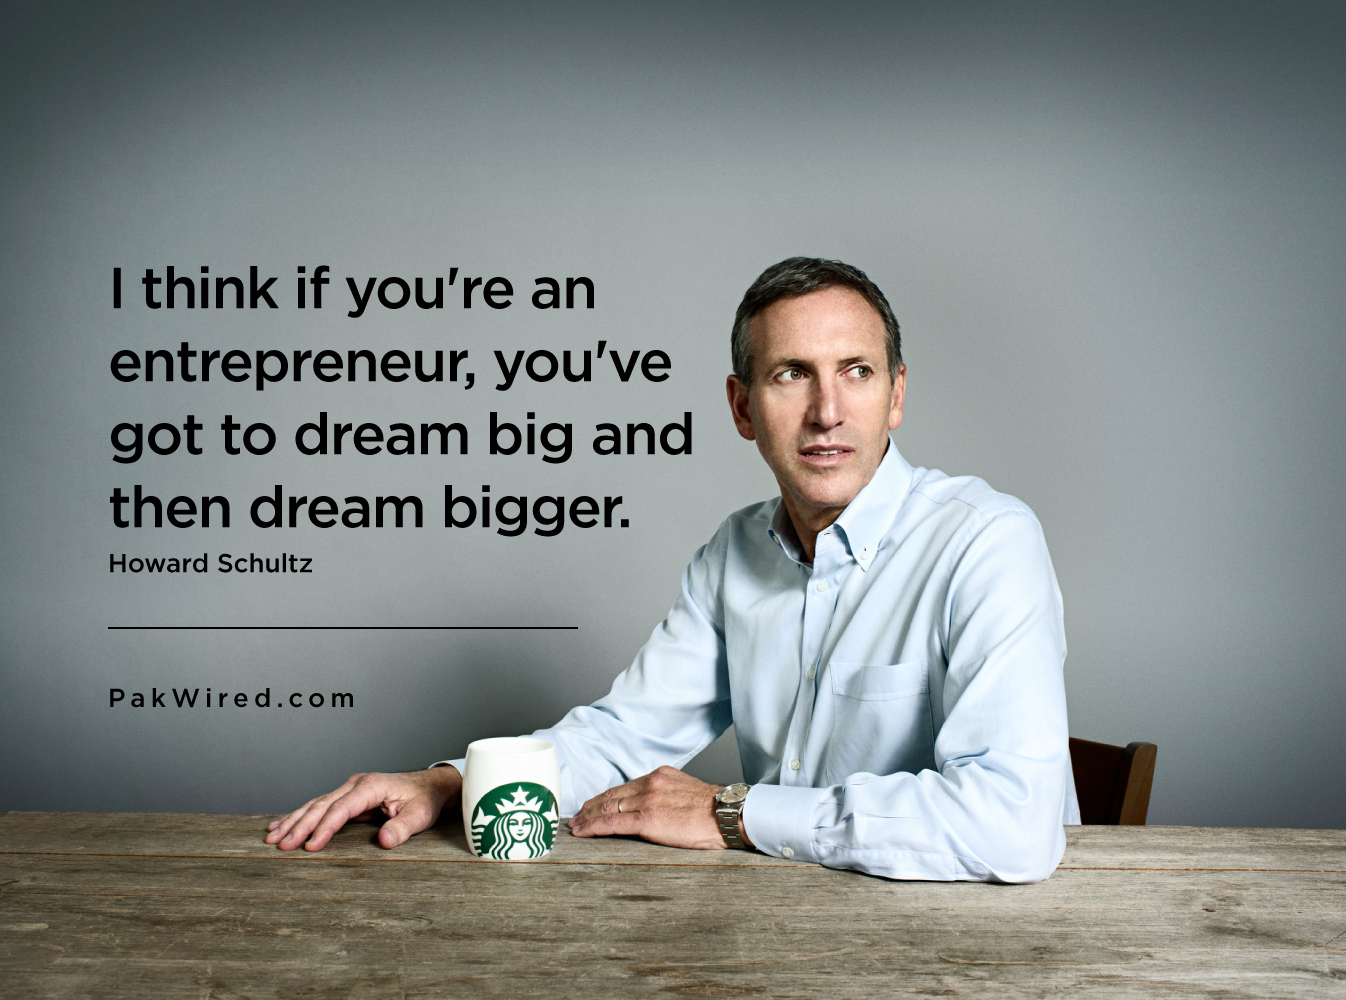 I think if you're an entrepreneur, you've got to dream big and then dream bigger.Howard Schultz